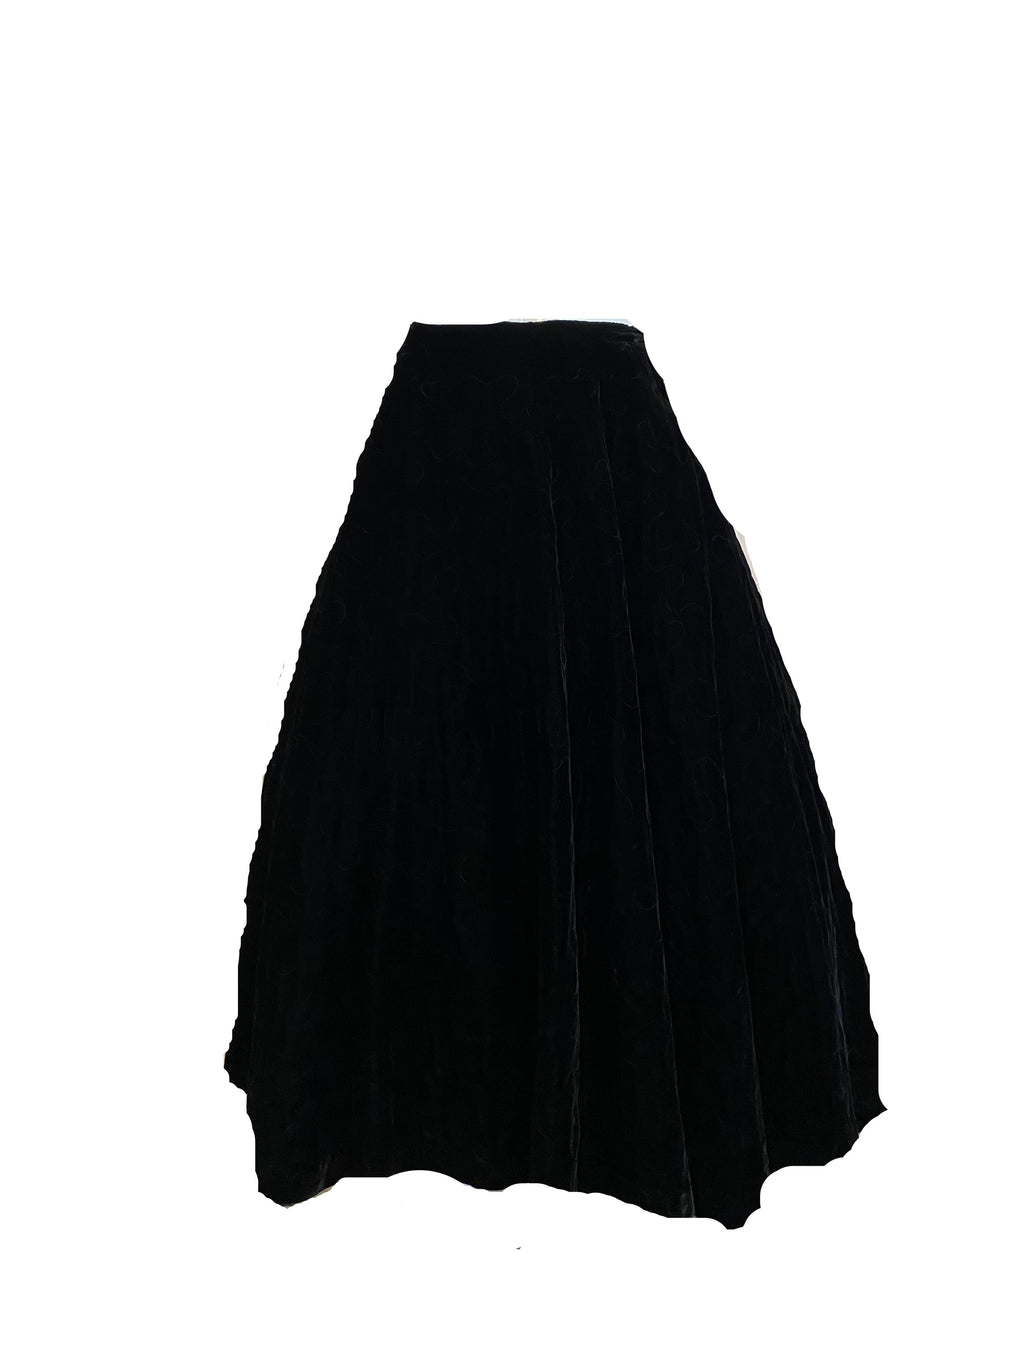 50s Black Velvet Quilted Circle Skirt FRONT 1 of 5